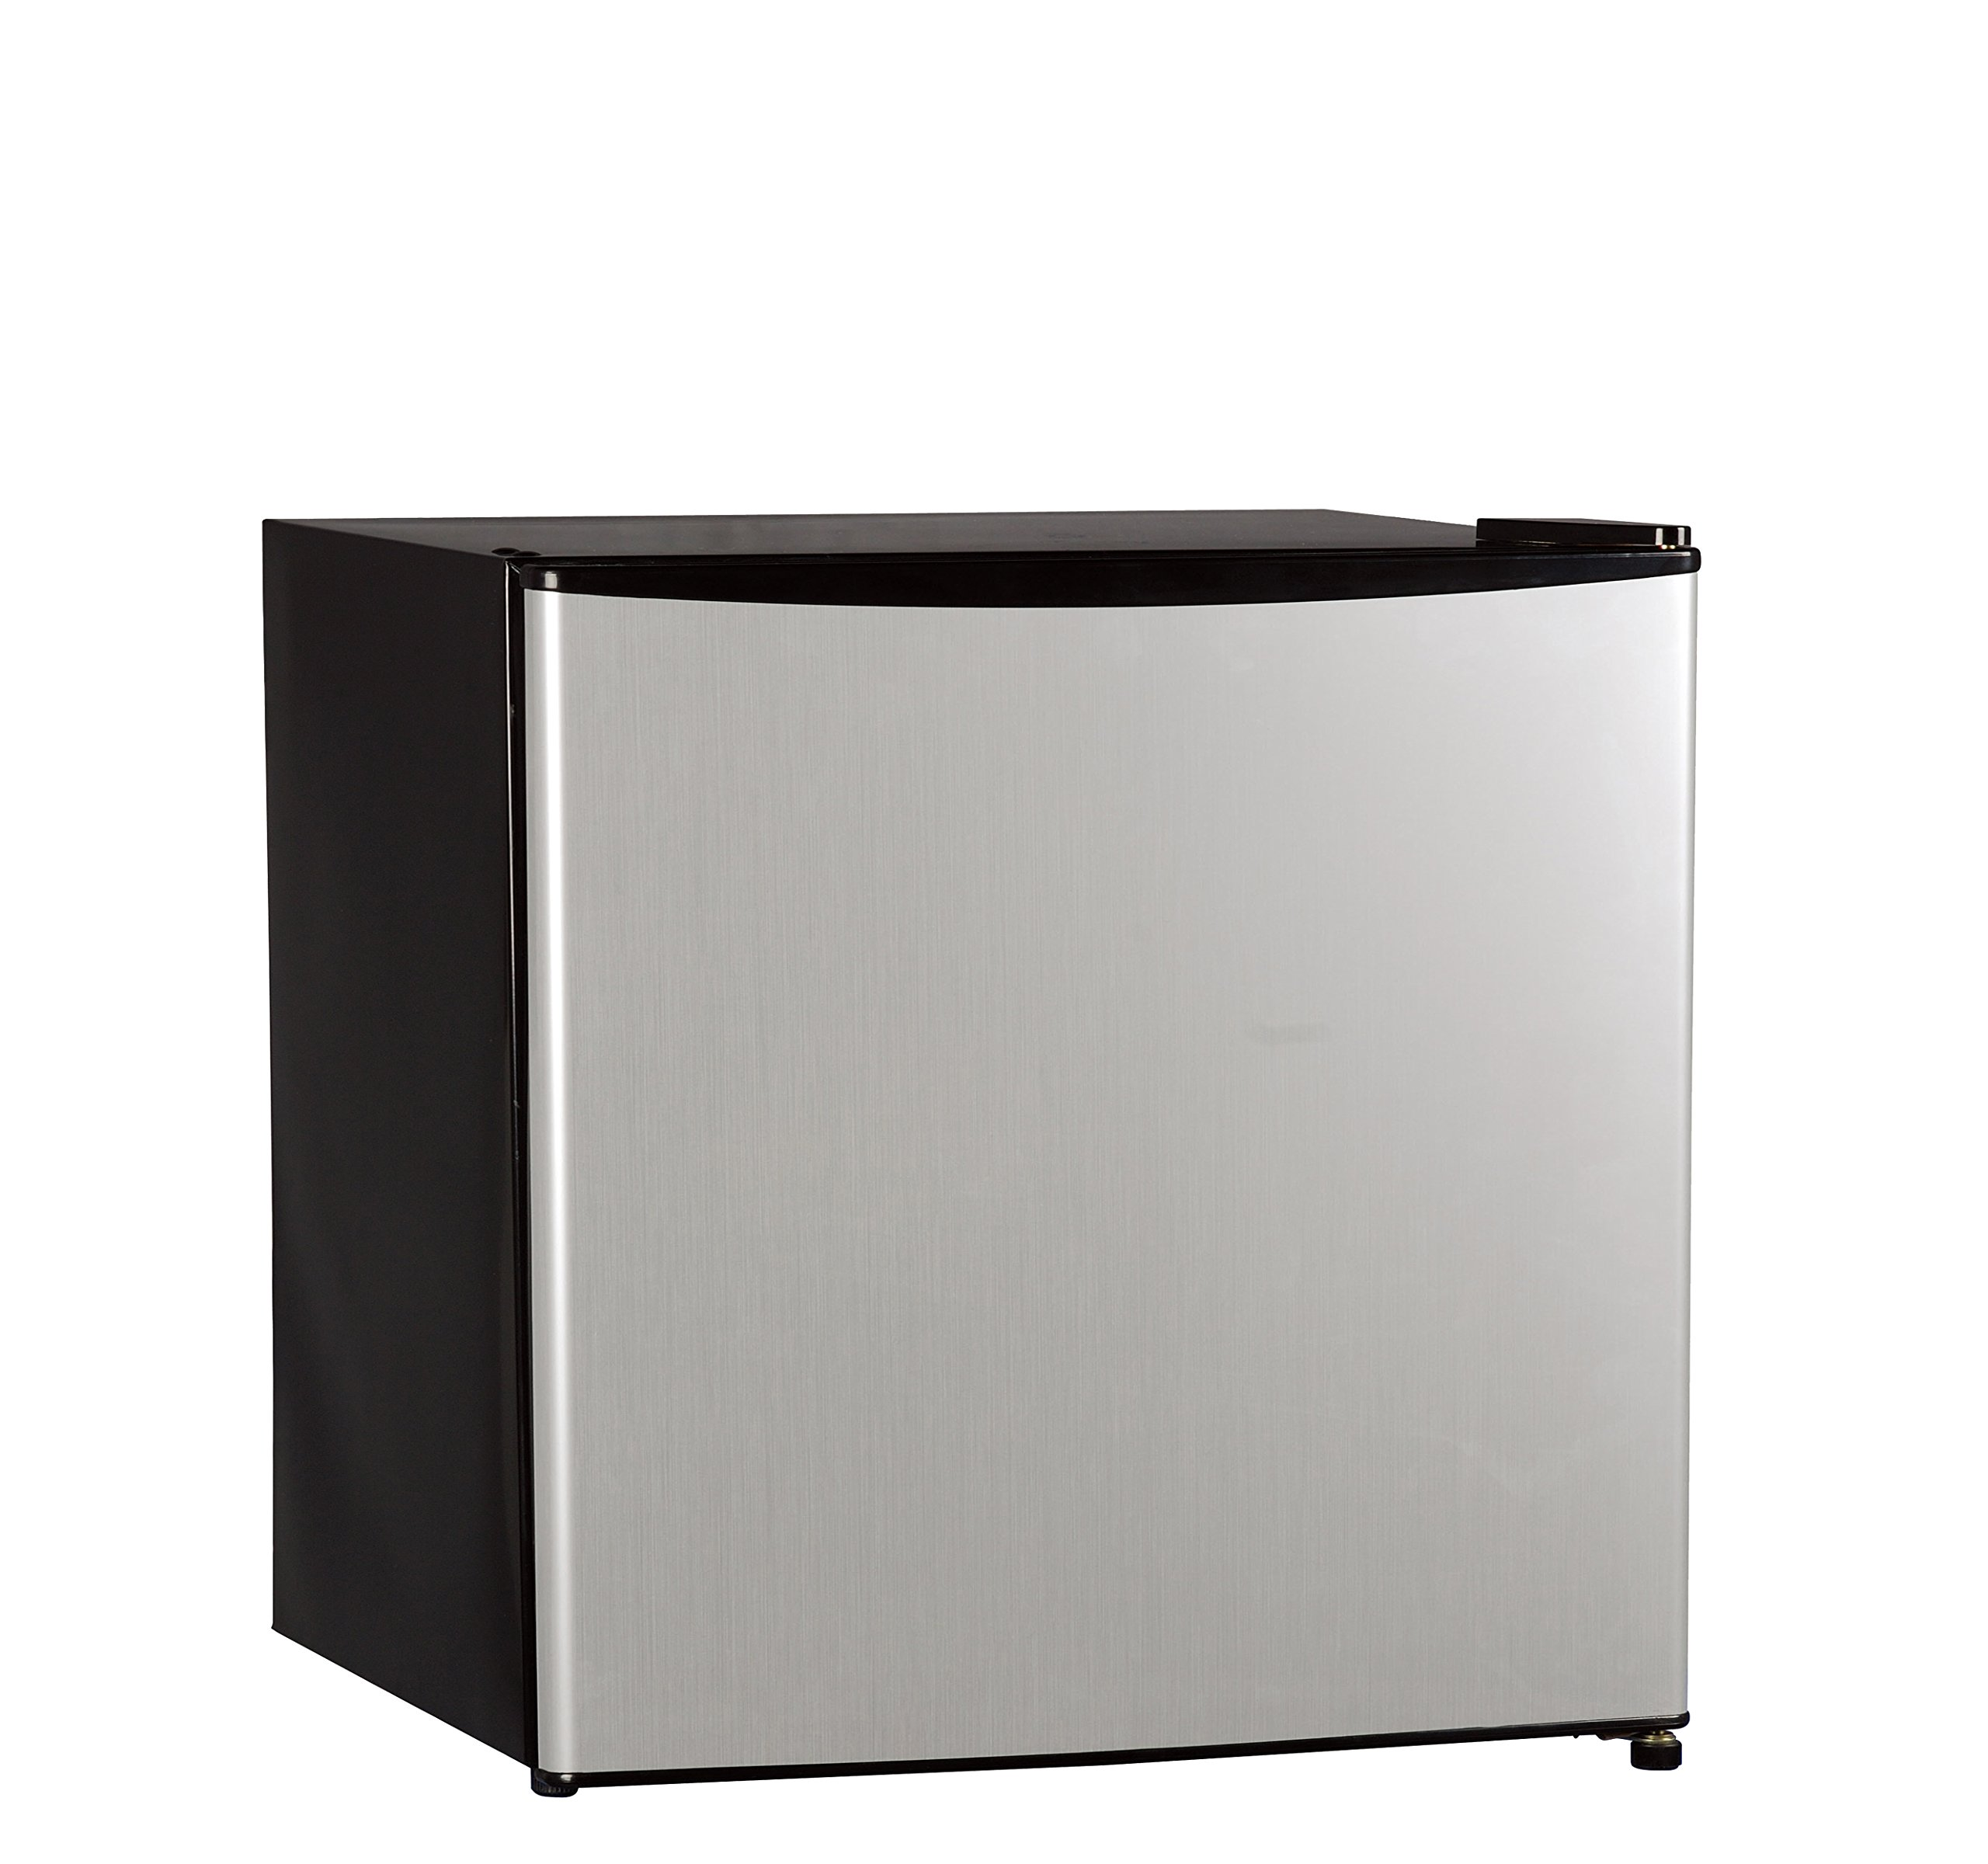 Midea WHS-65LSS1 Compact Single Reversible Door Refrigerator and Freezer, 1.6 Cubic Feet, Stainless Steel